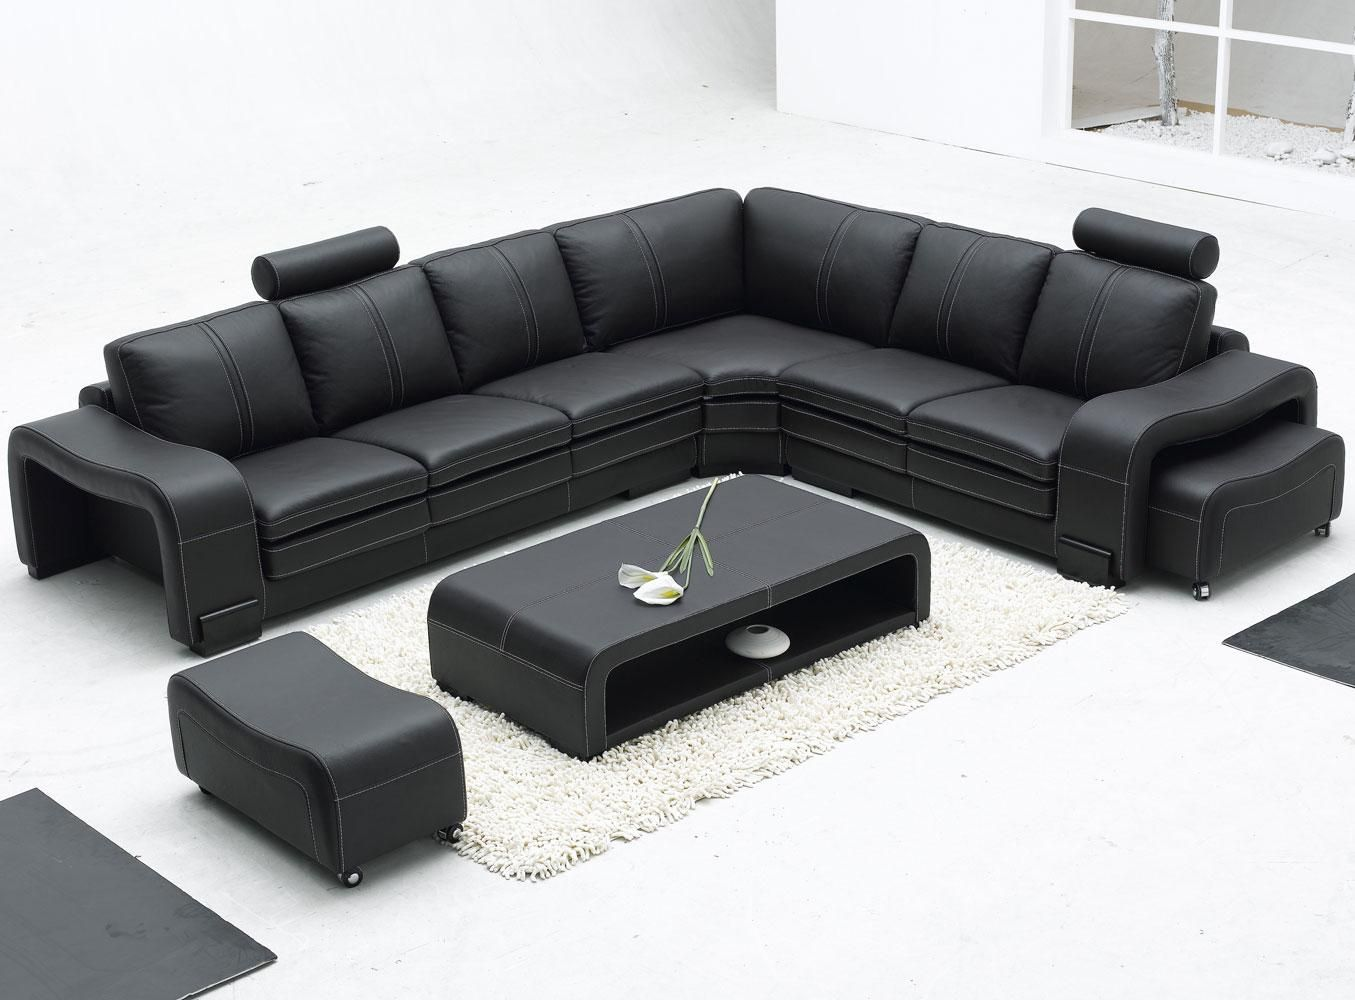 sectional leather sofa parth leather corner sofa leather rh pinterest com